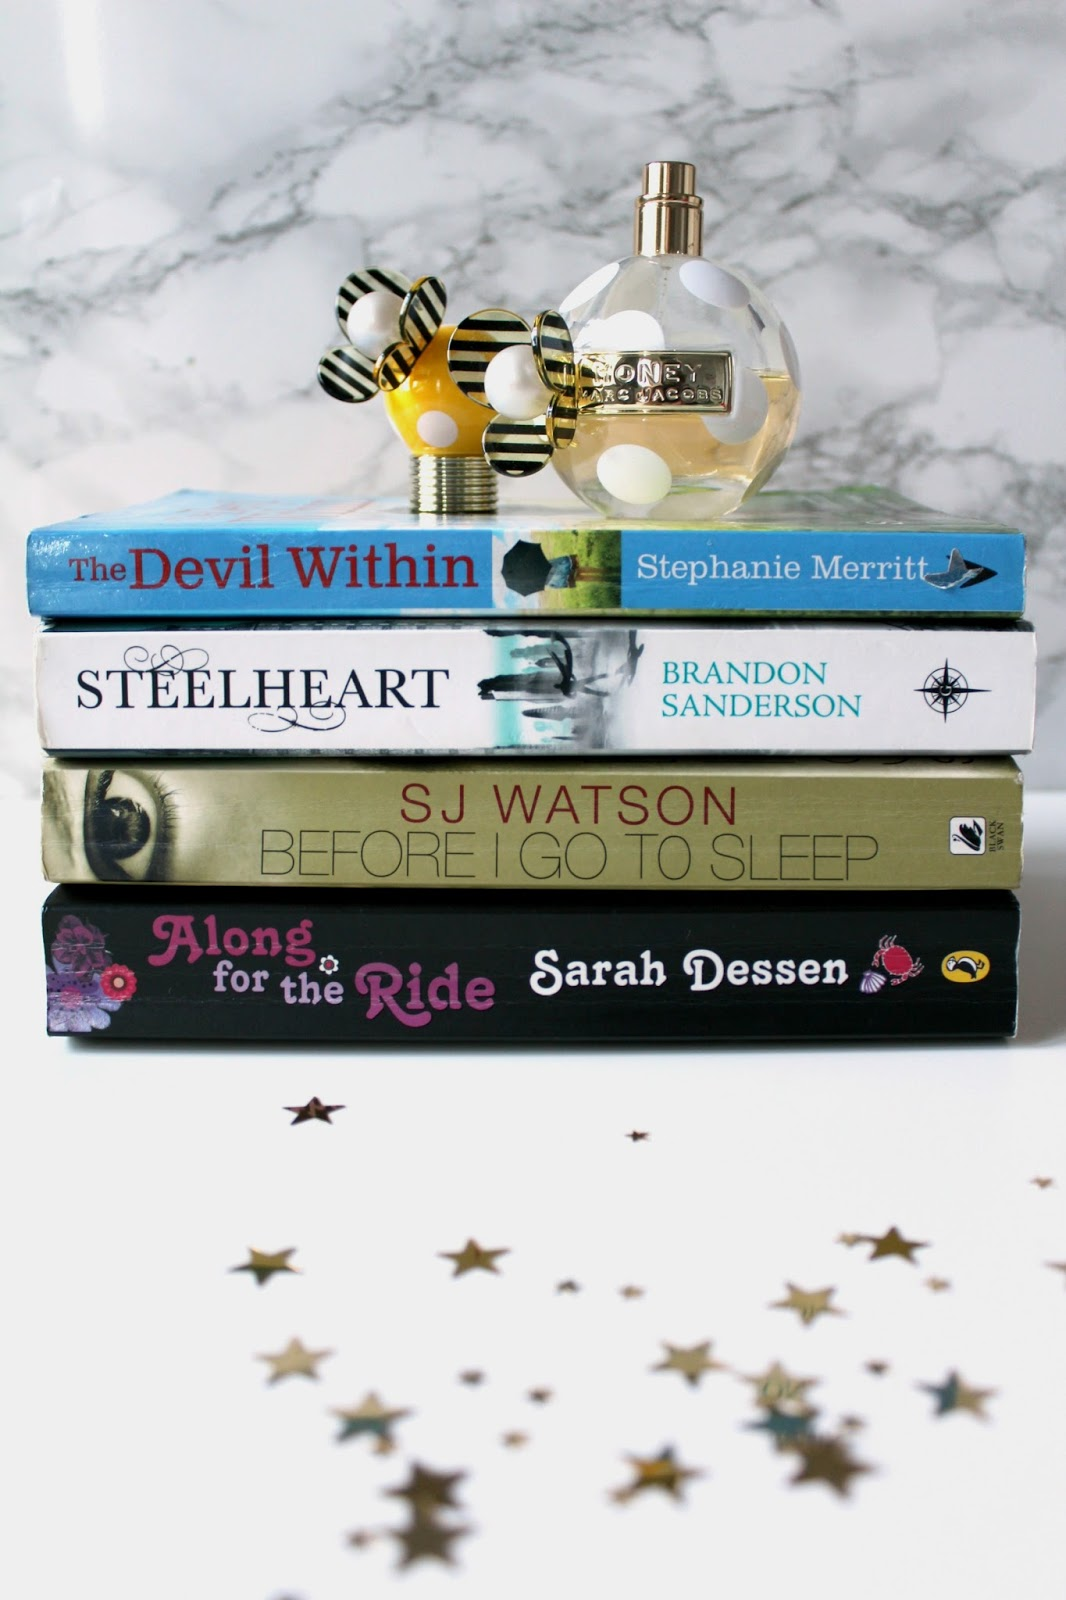 four books i love steelheart brandon sanderson the devil within stephanie merritt sj watson before i go to sleep along for the ride sarah dessen